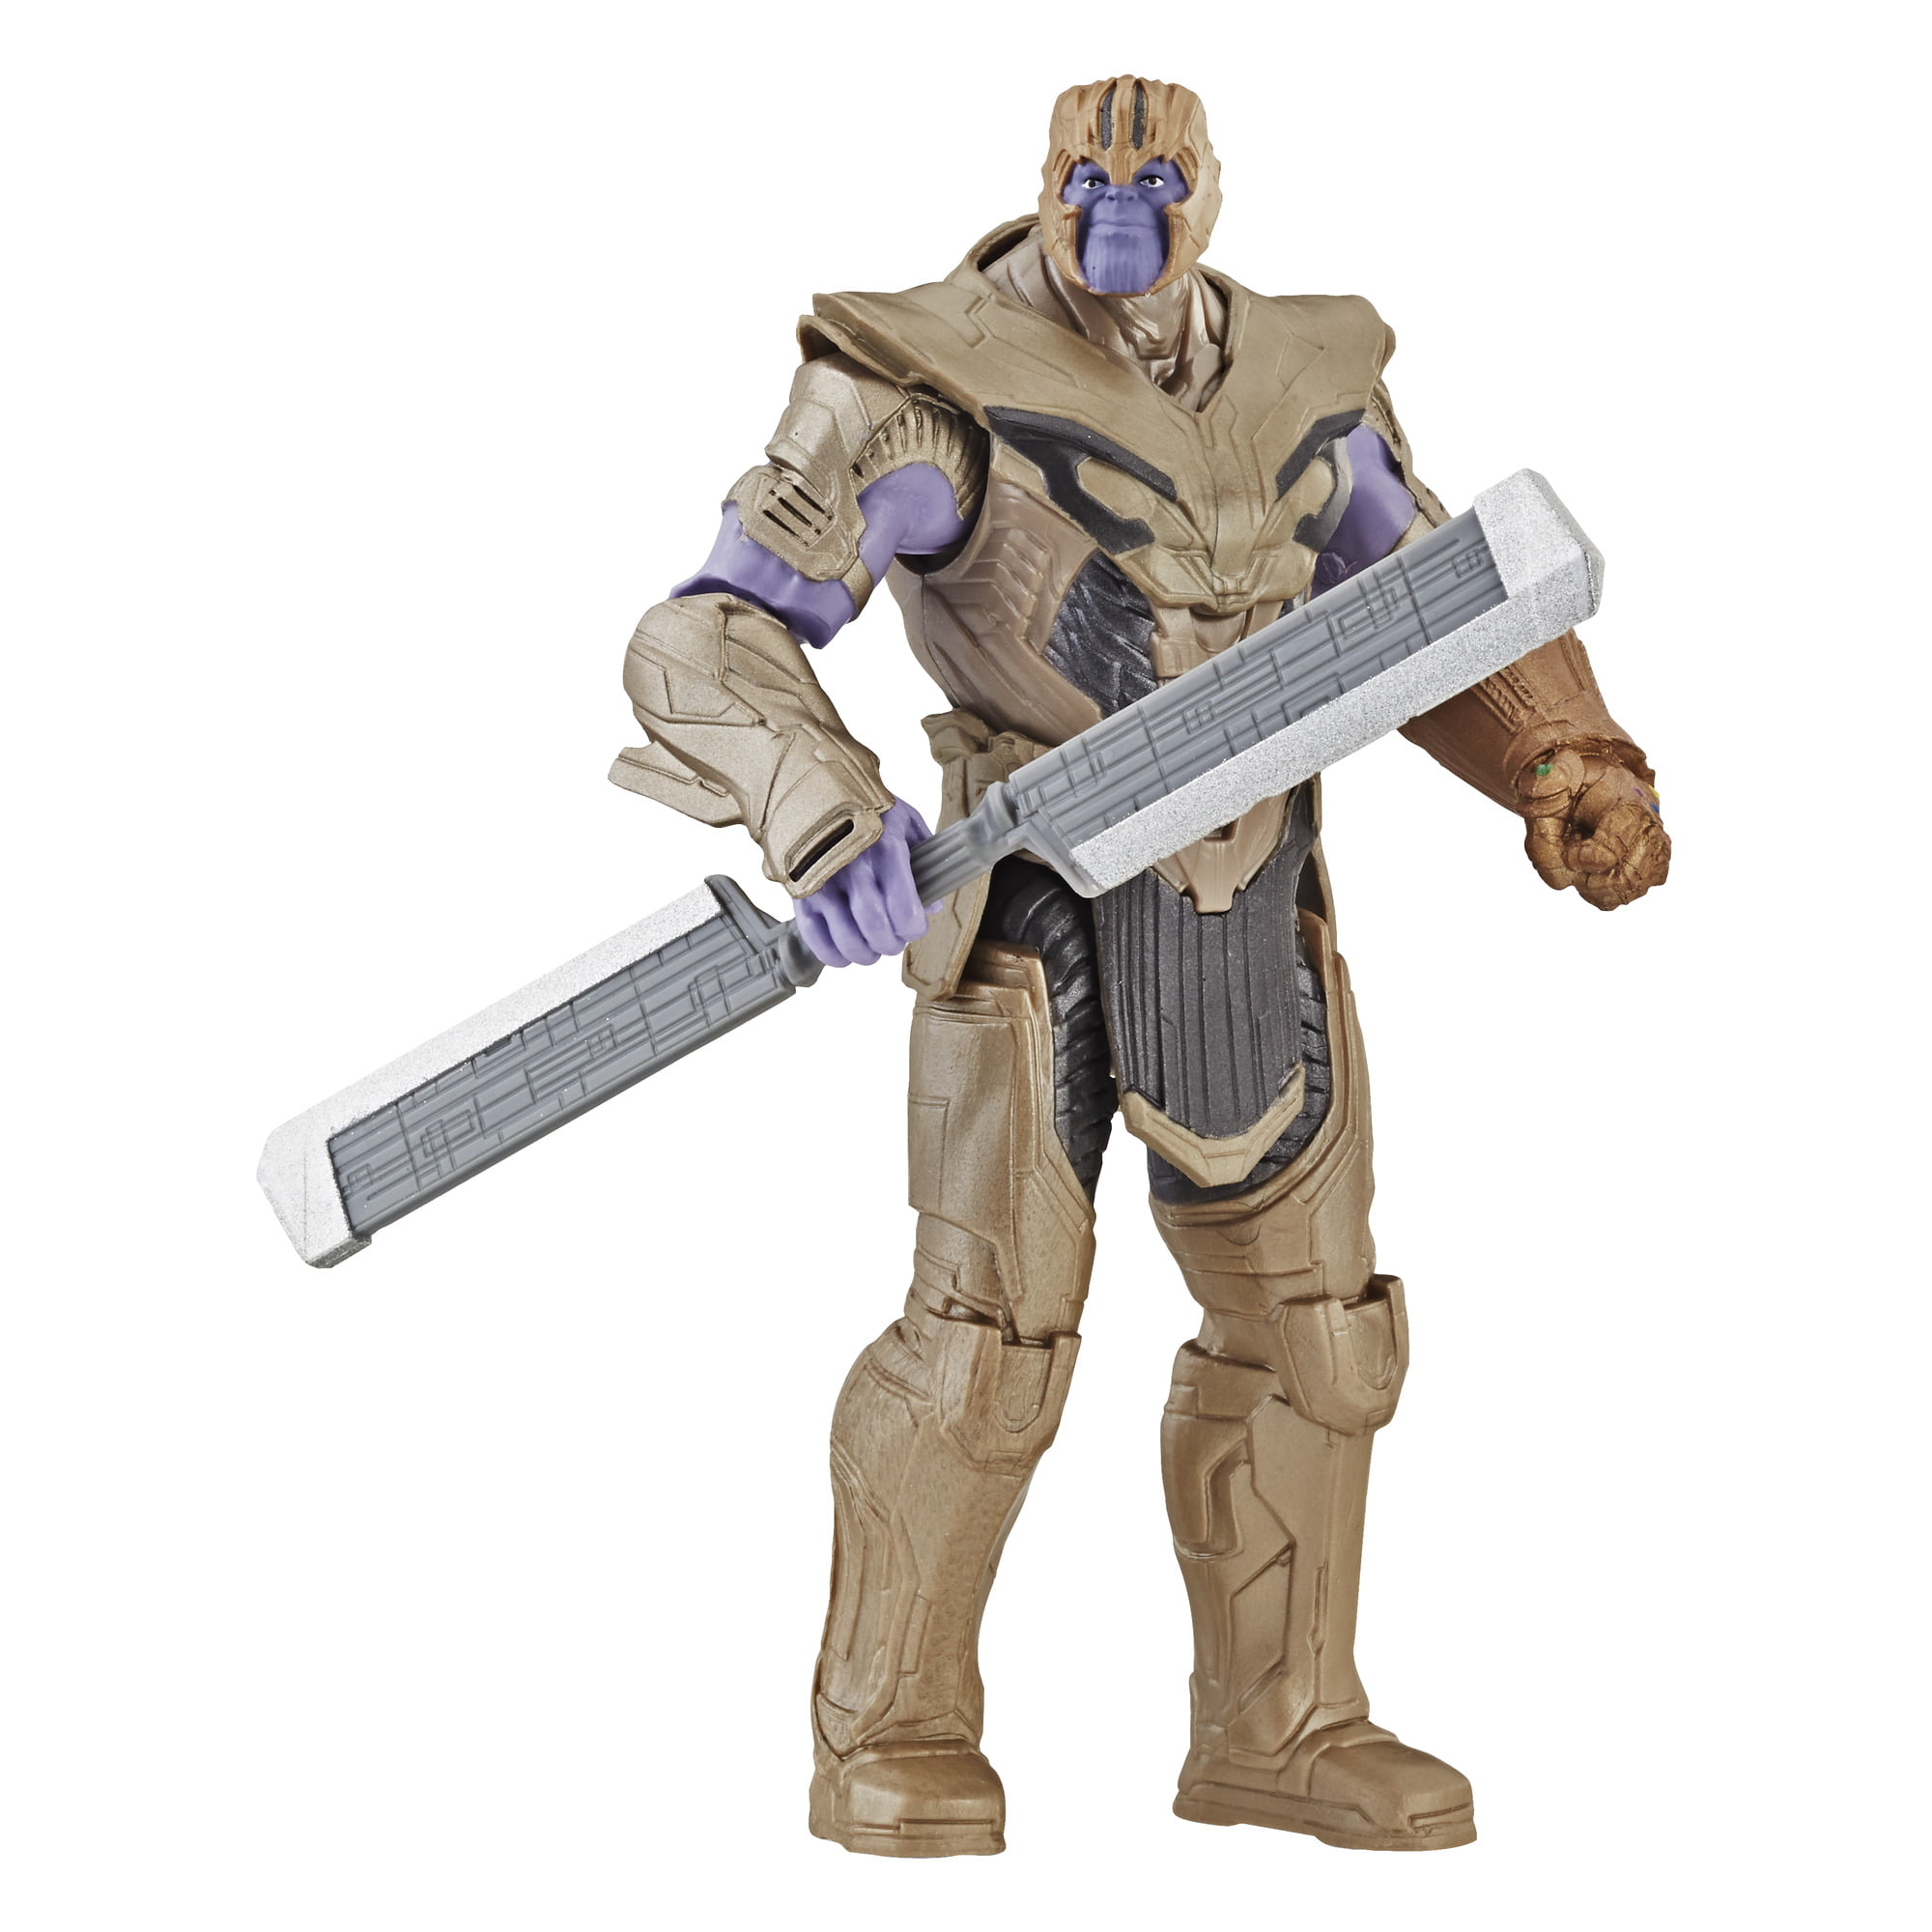 Avengers Endgame Thanos Big Size Figure Marvel Stones Infinity Gauntlet Toy